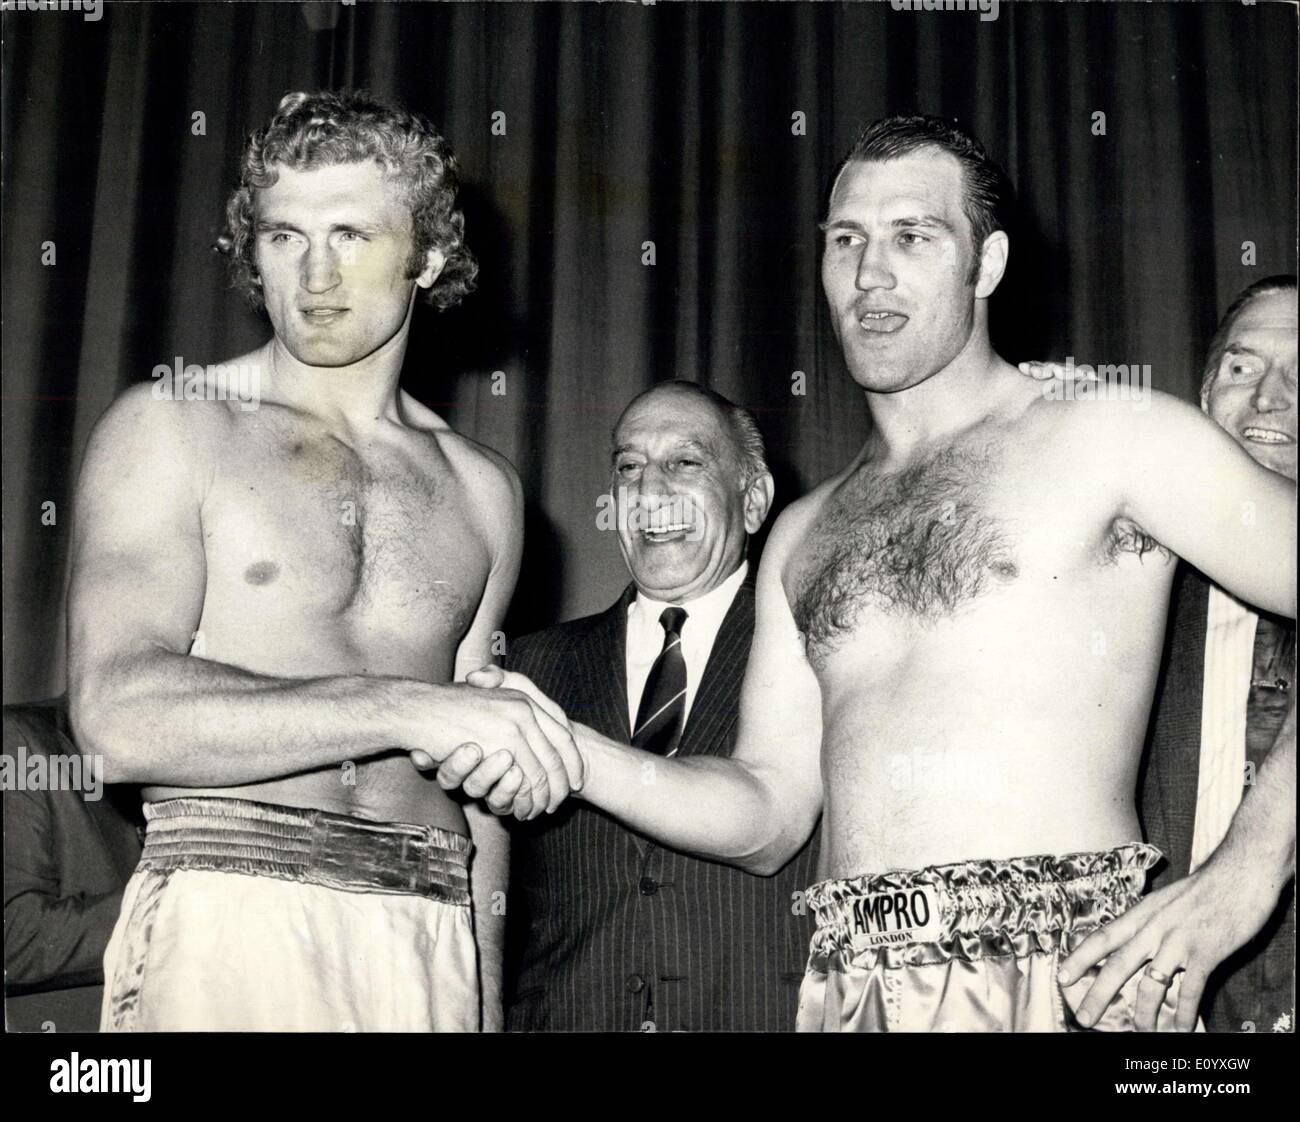 Sep. 27, 1971 - Joe Bugner and jack Bodell weigh-in for tonight's fight. Photo shows Joe Bugner (left) and Jack Bodell pcitured - Stock Image